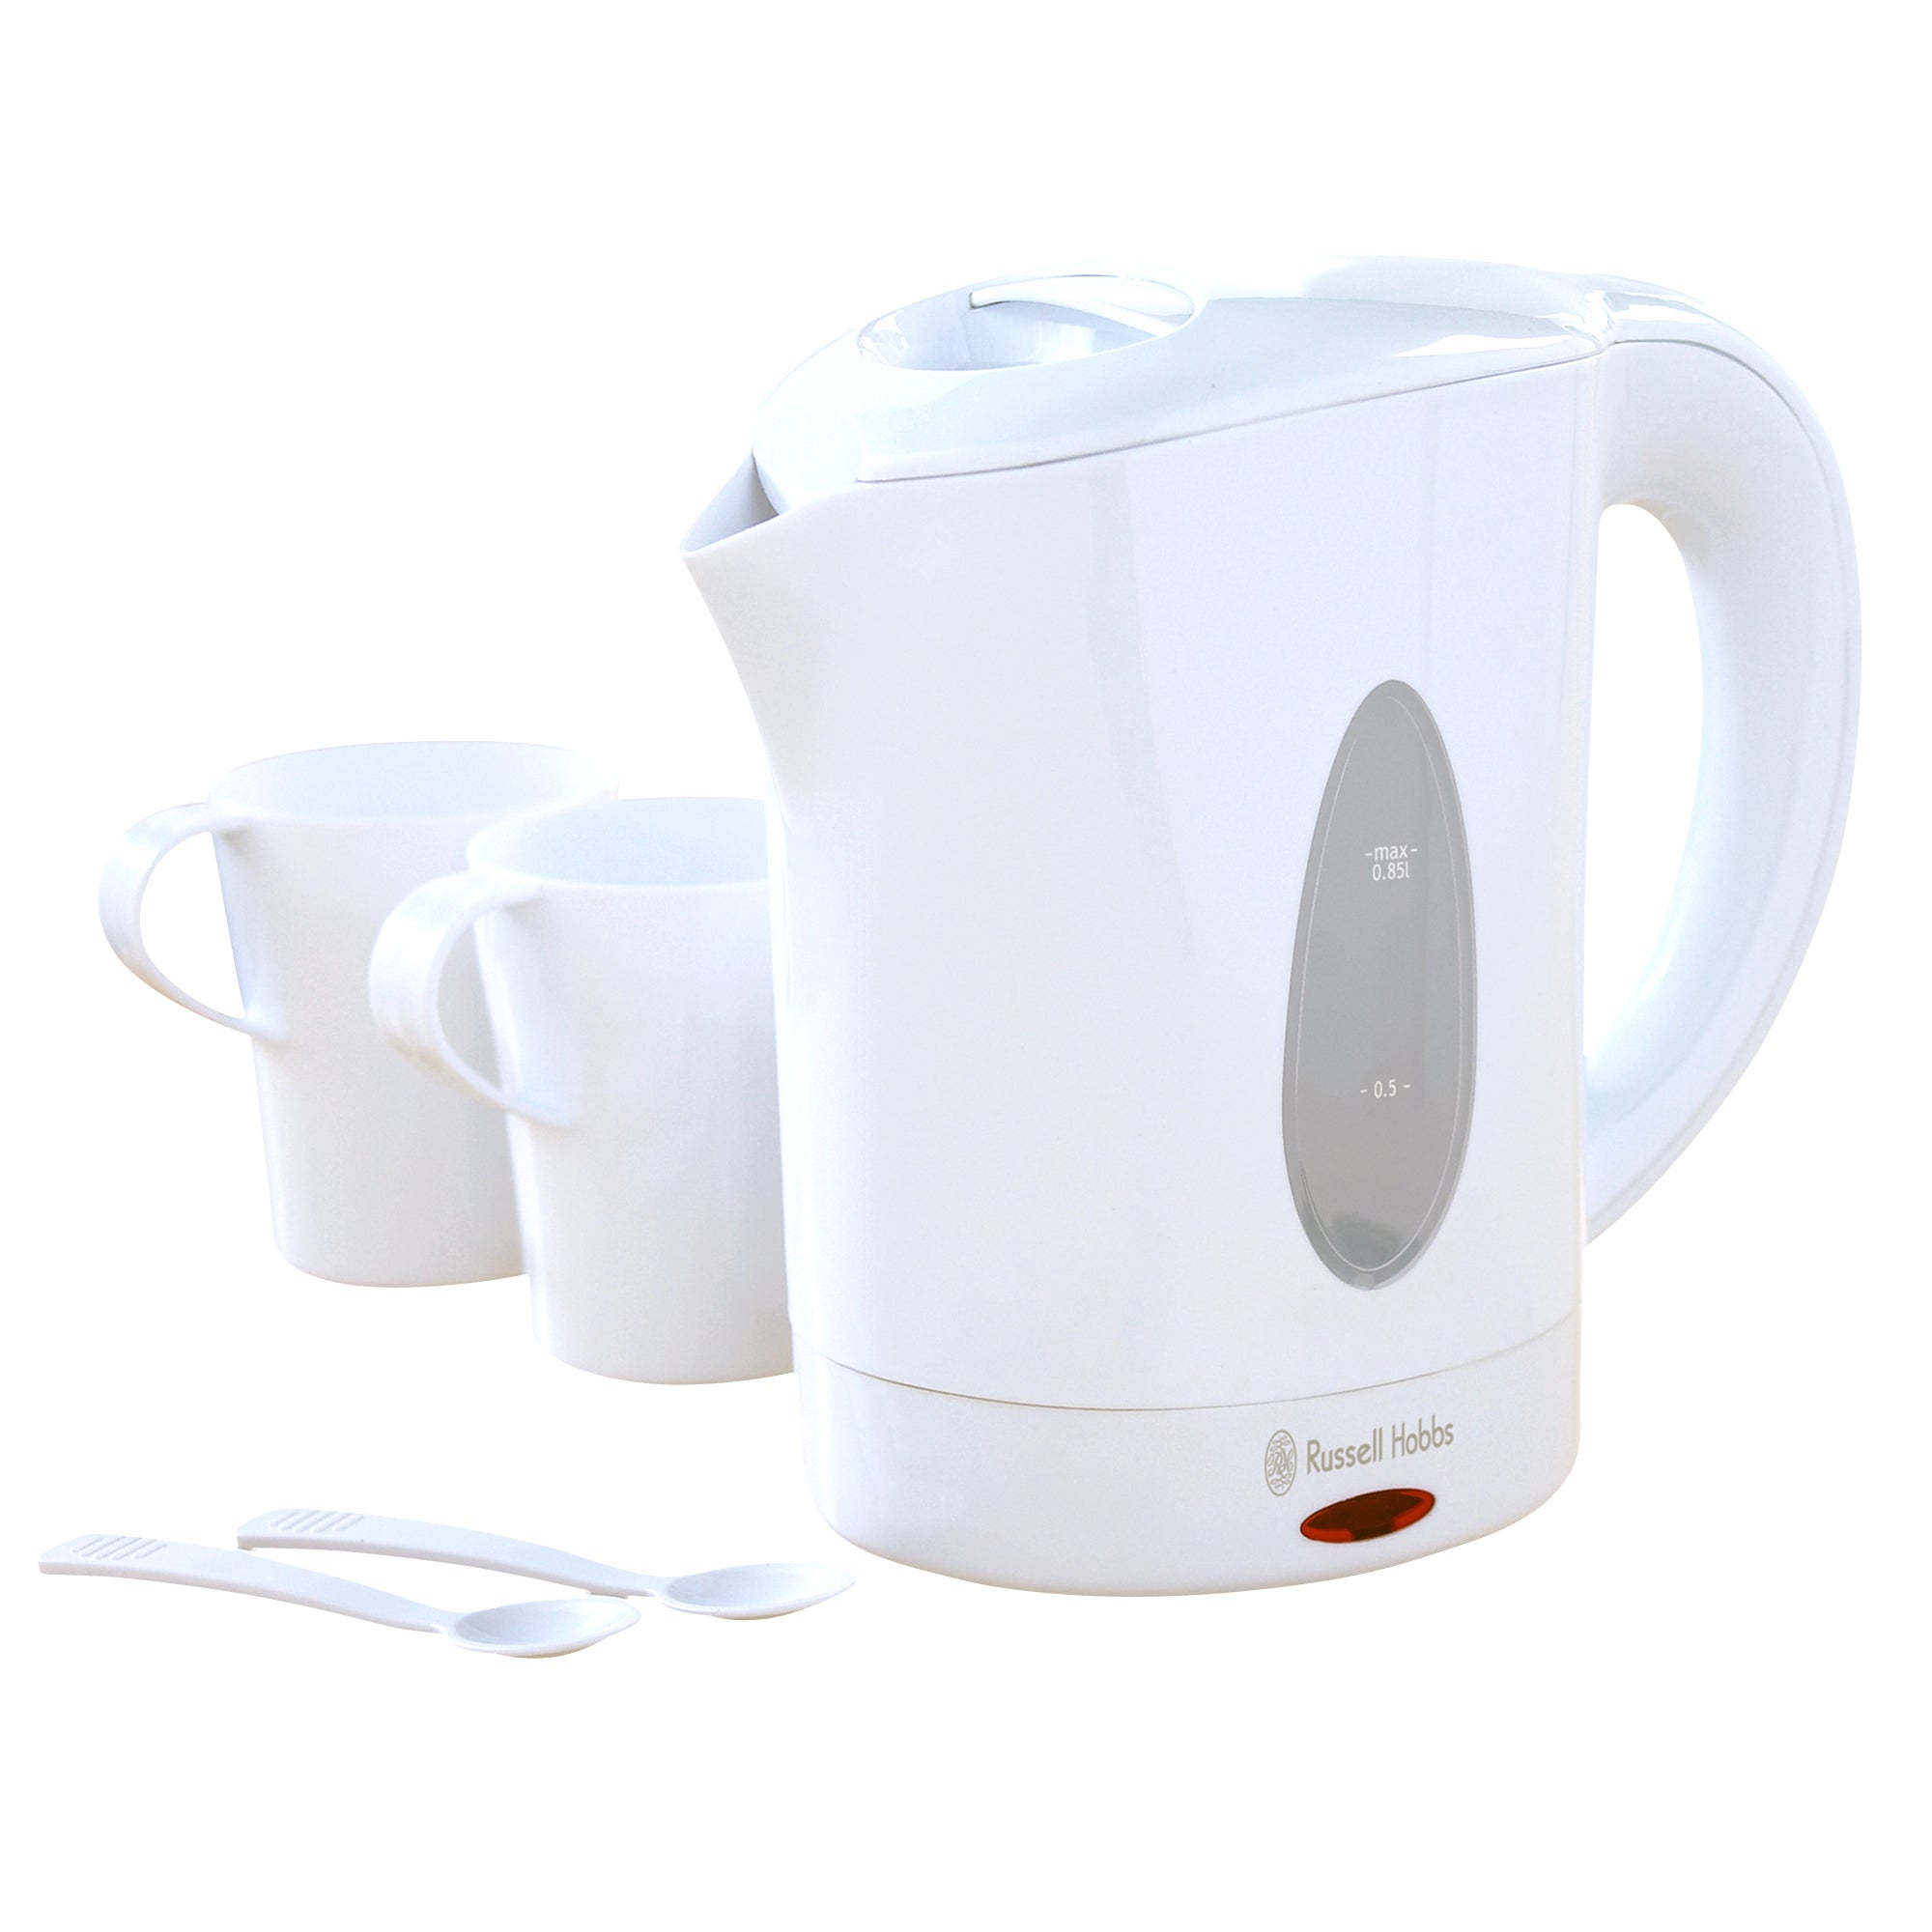 Russell Hobbs 14178 White Classic Travel Kettle